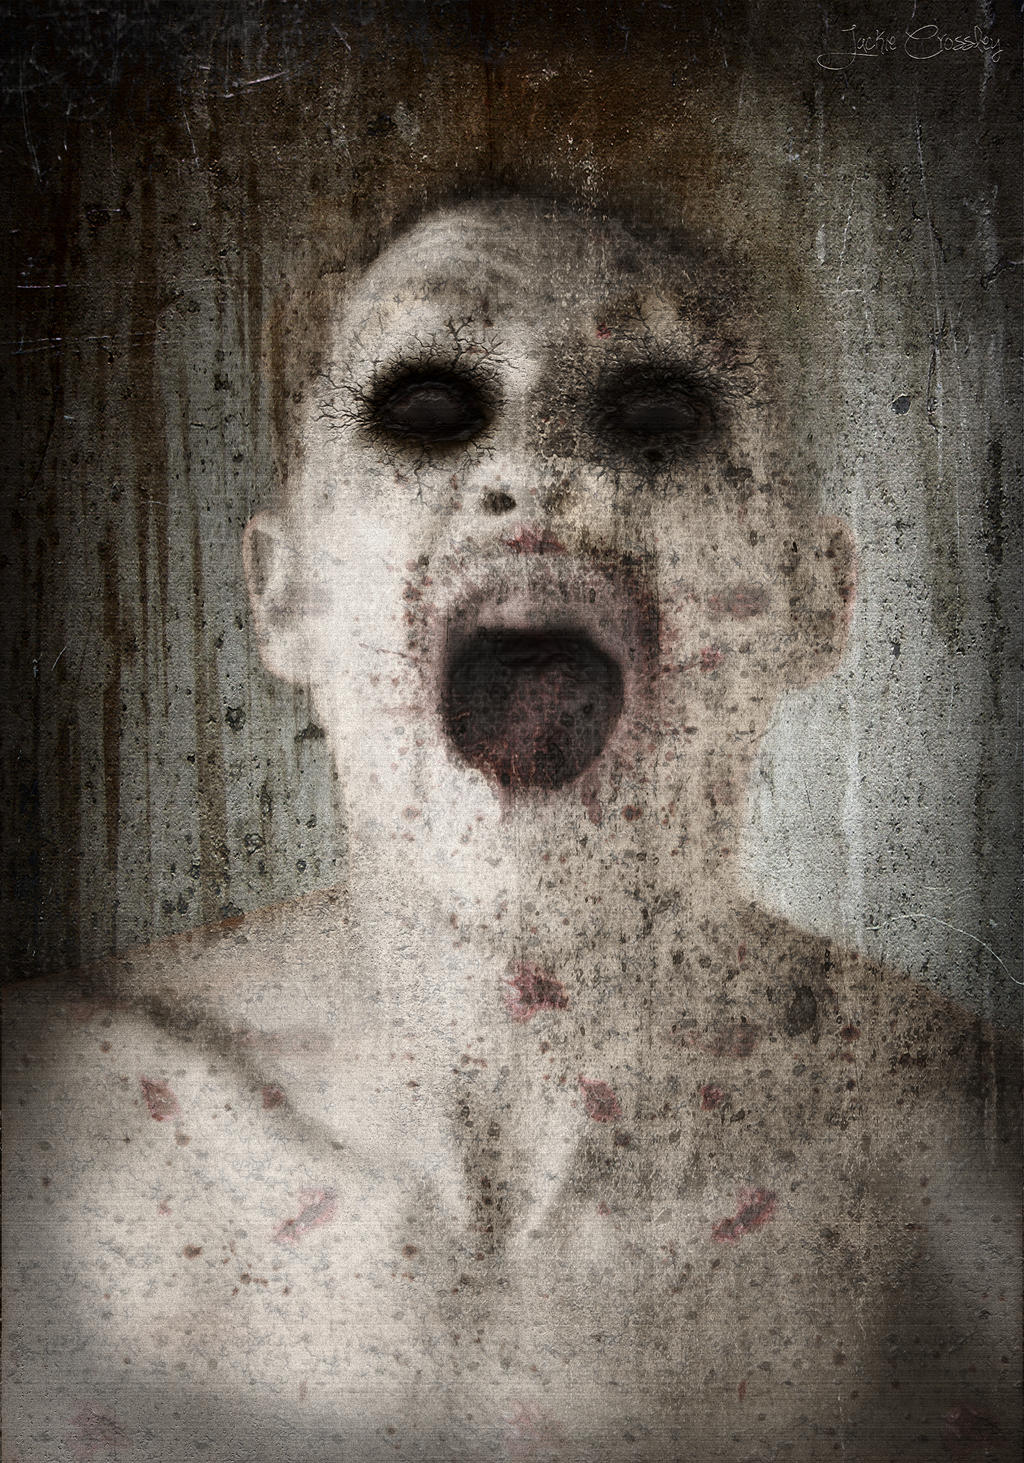 Zombie 0010 by JackieCrossley